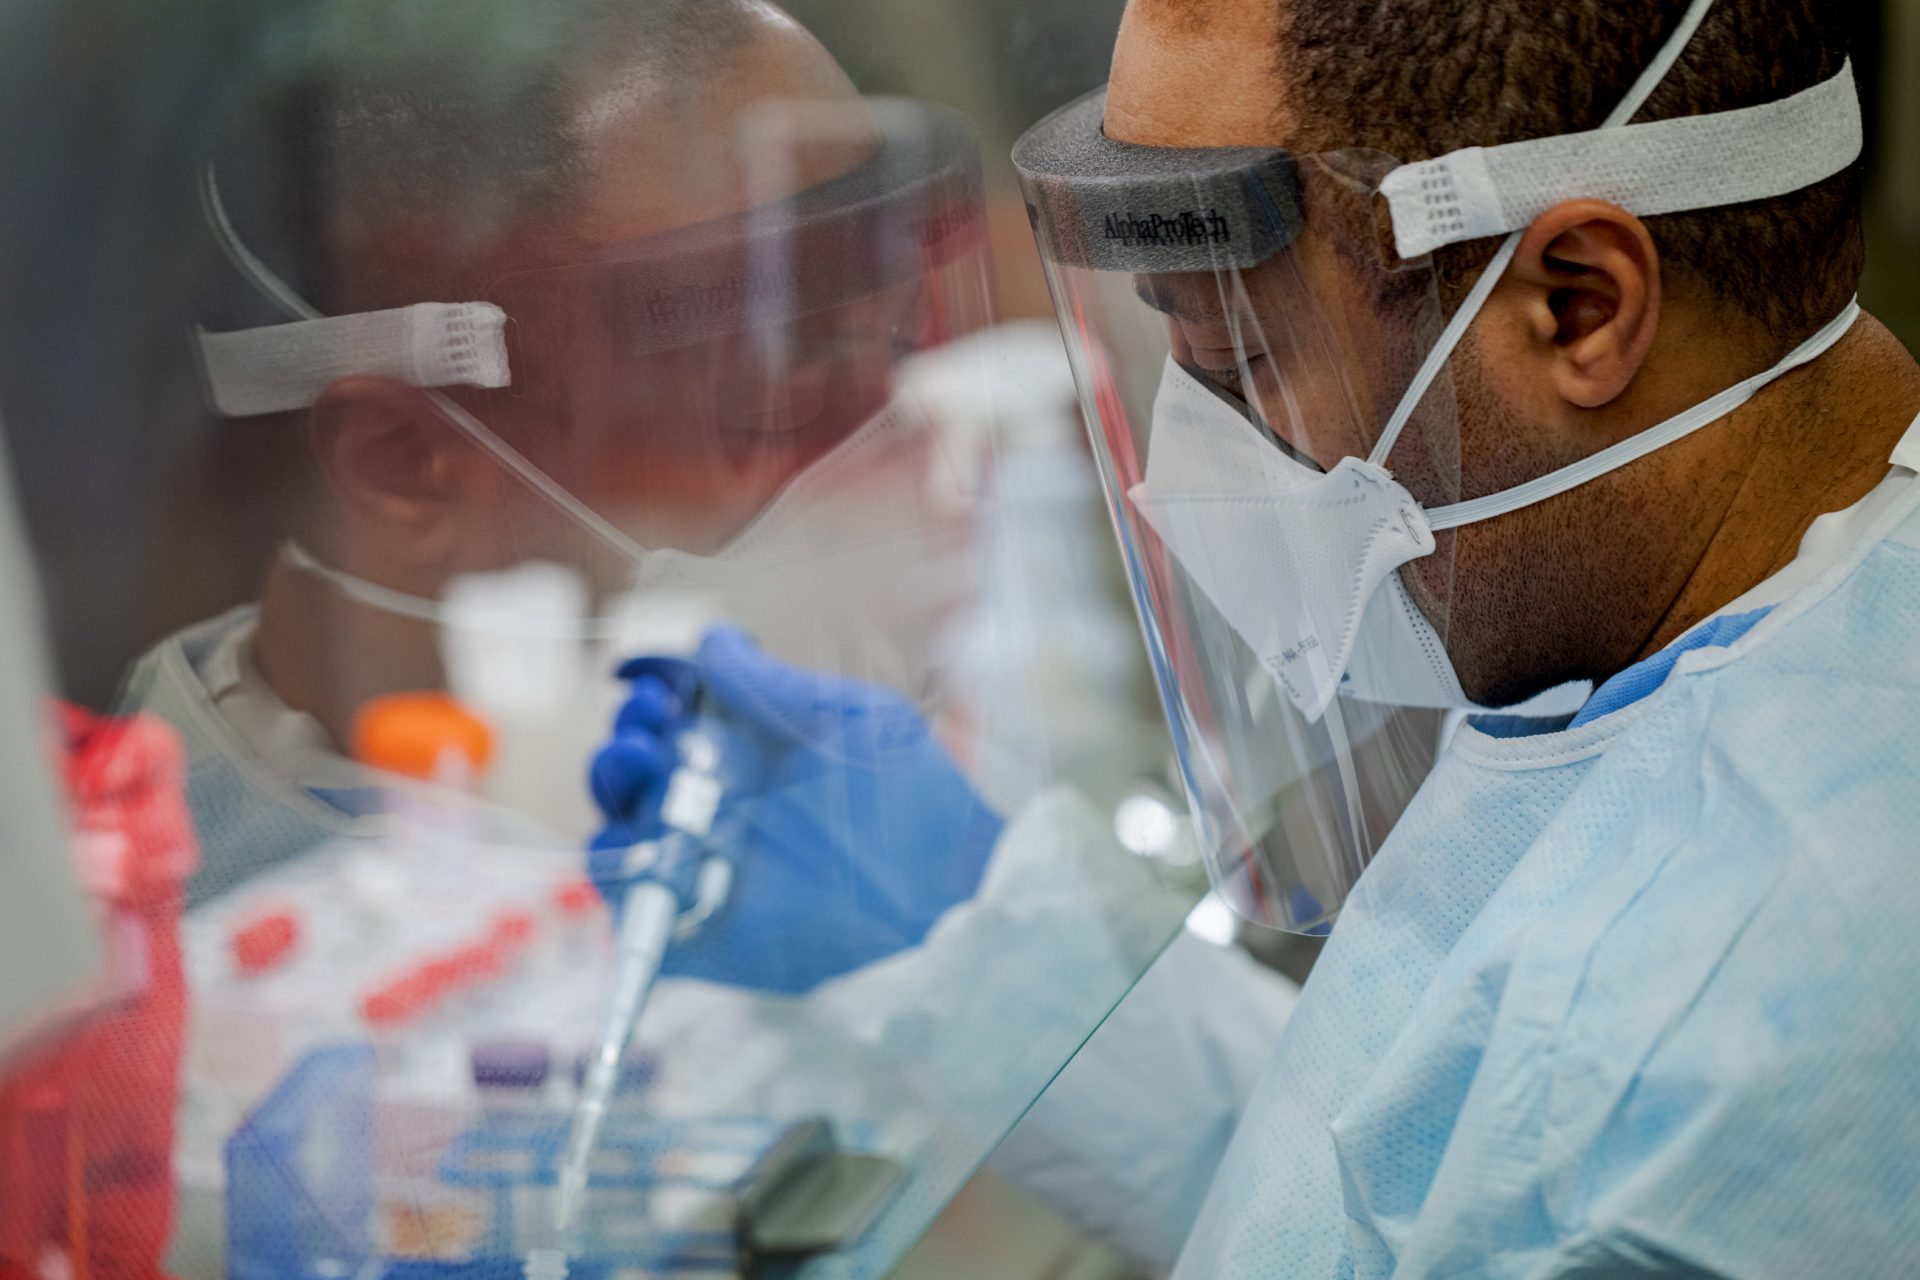 Pennsylvania Commonwealth microbiologist Kerry Pollard performs a manual extraction of the coronavirus inside the extraction lab at the Pennsylvania Department of Health Bureau of Laboratories on Friday, March 6, 2020.